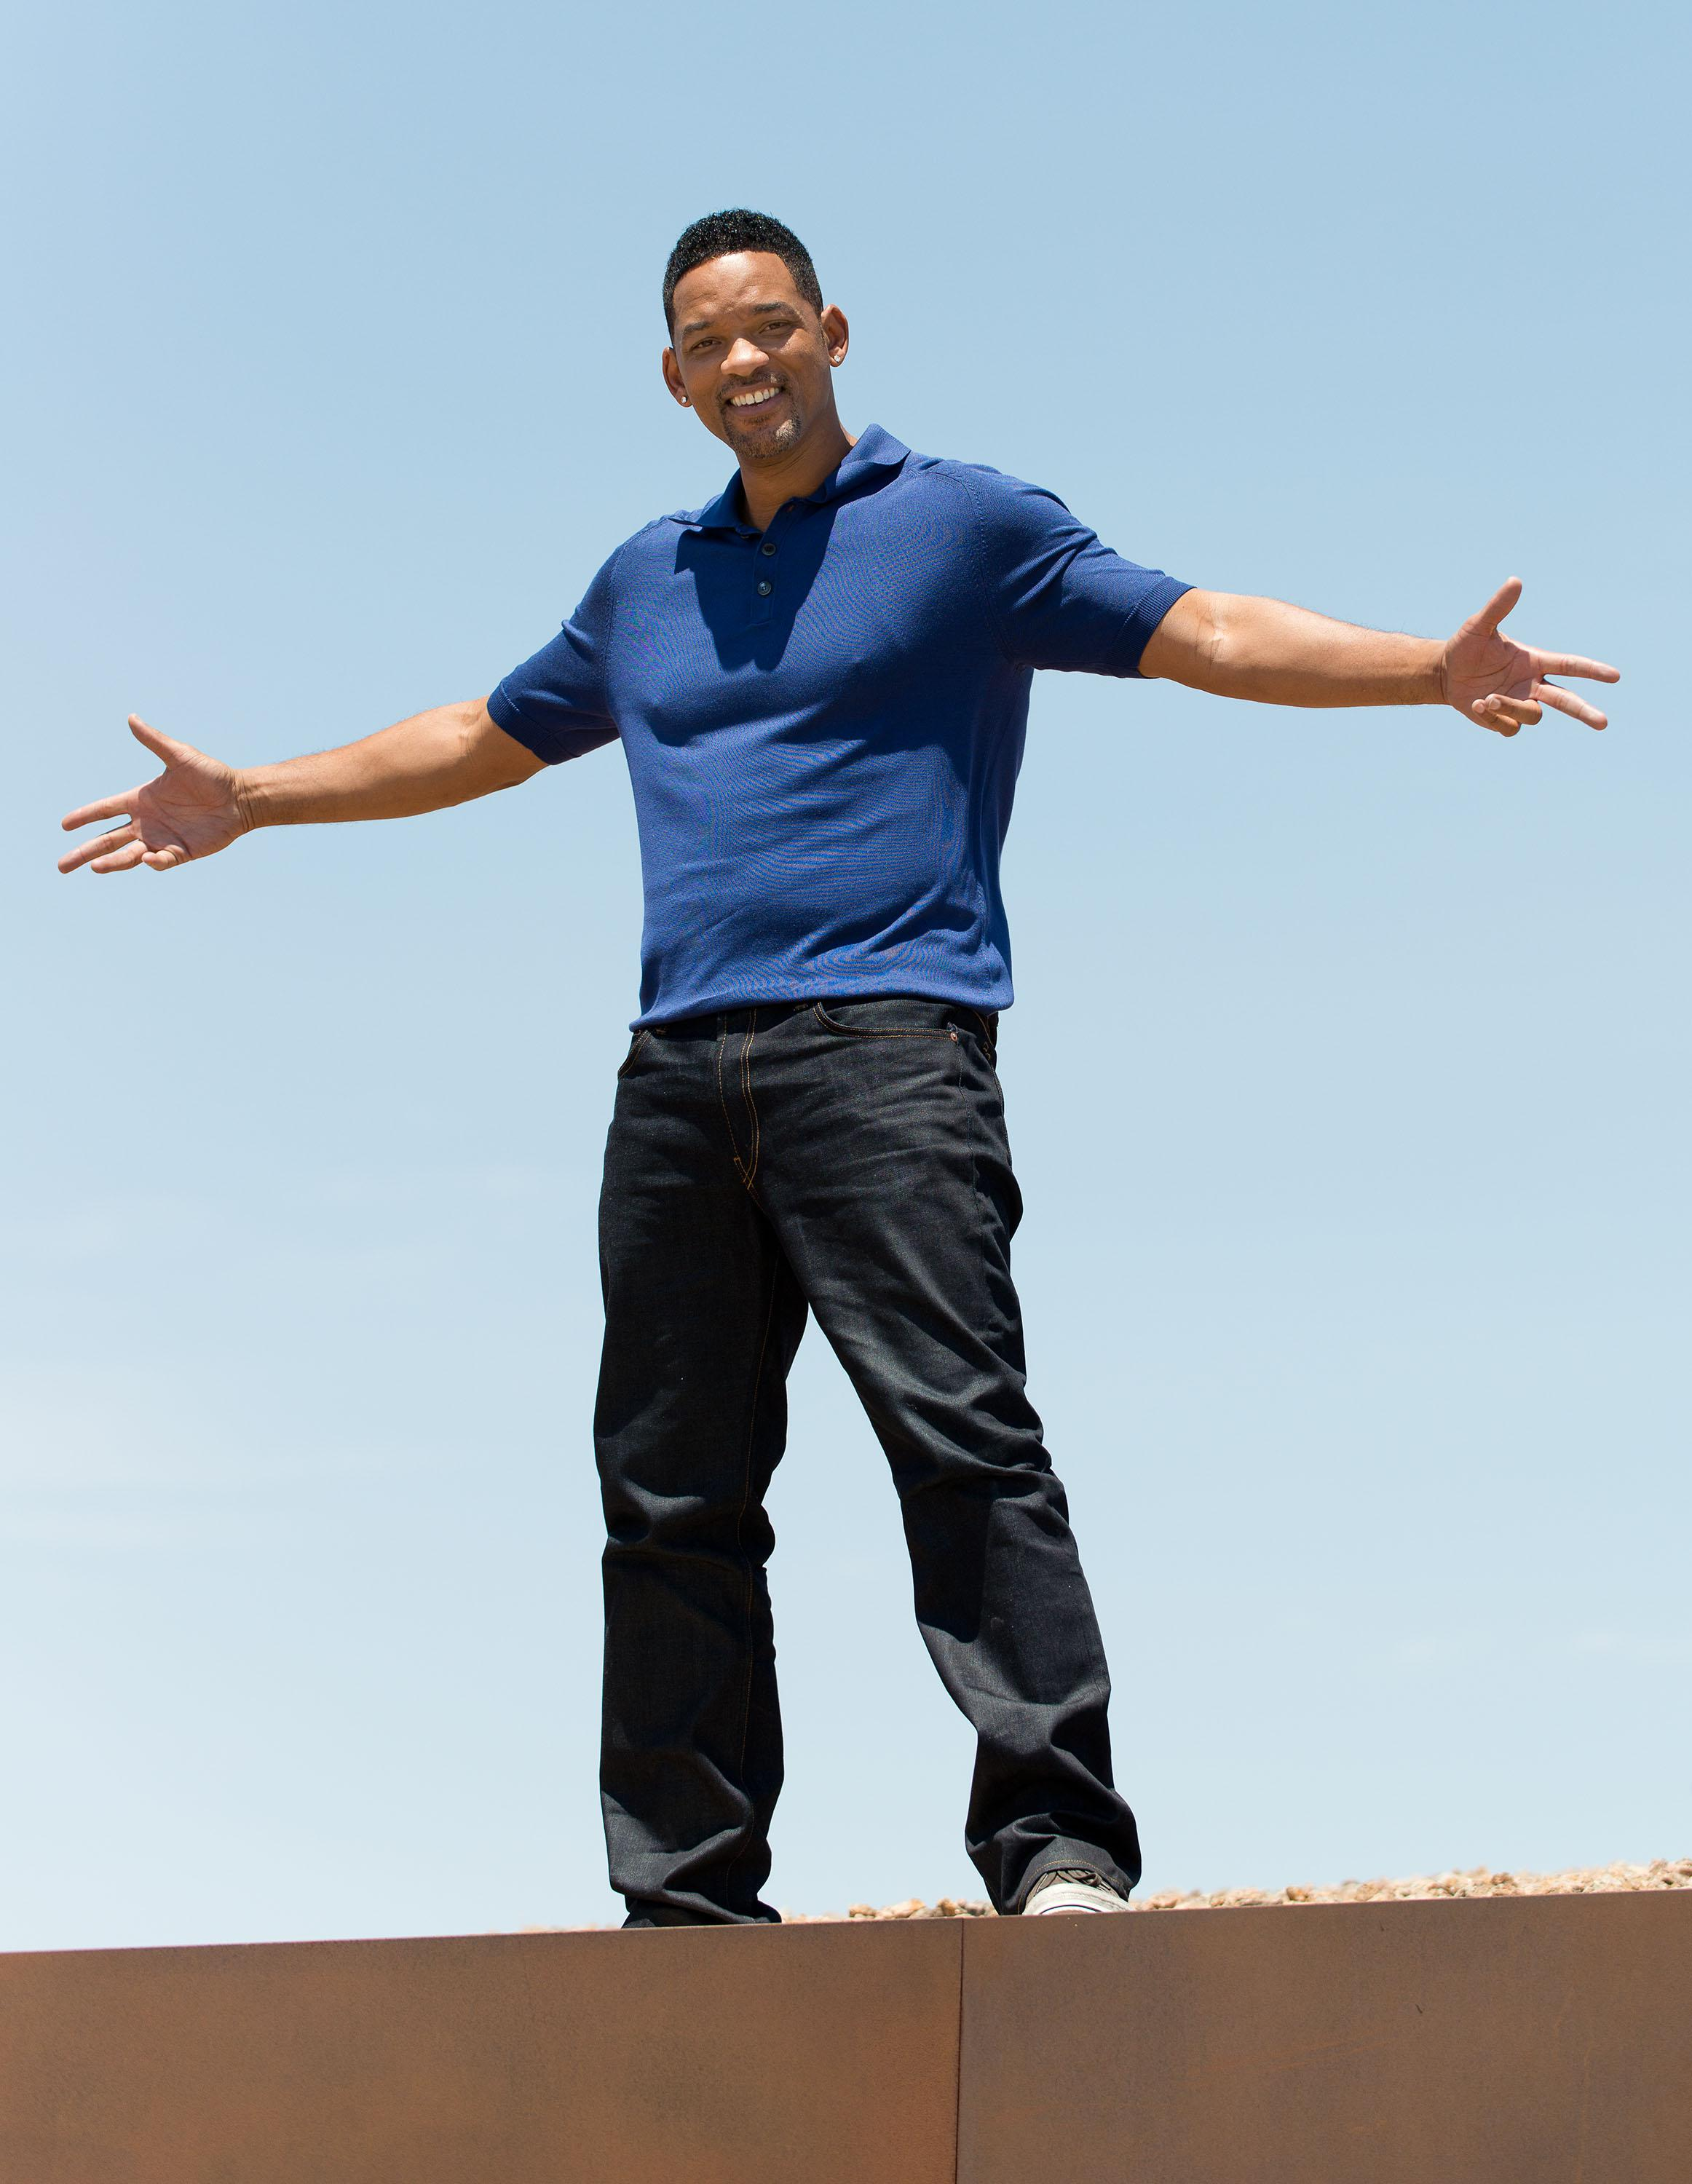 Colombia Pictures' 'After Earth' Press Junket At Spaceport America